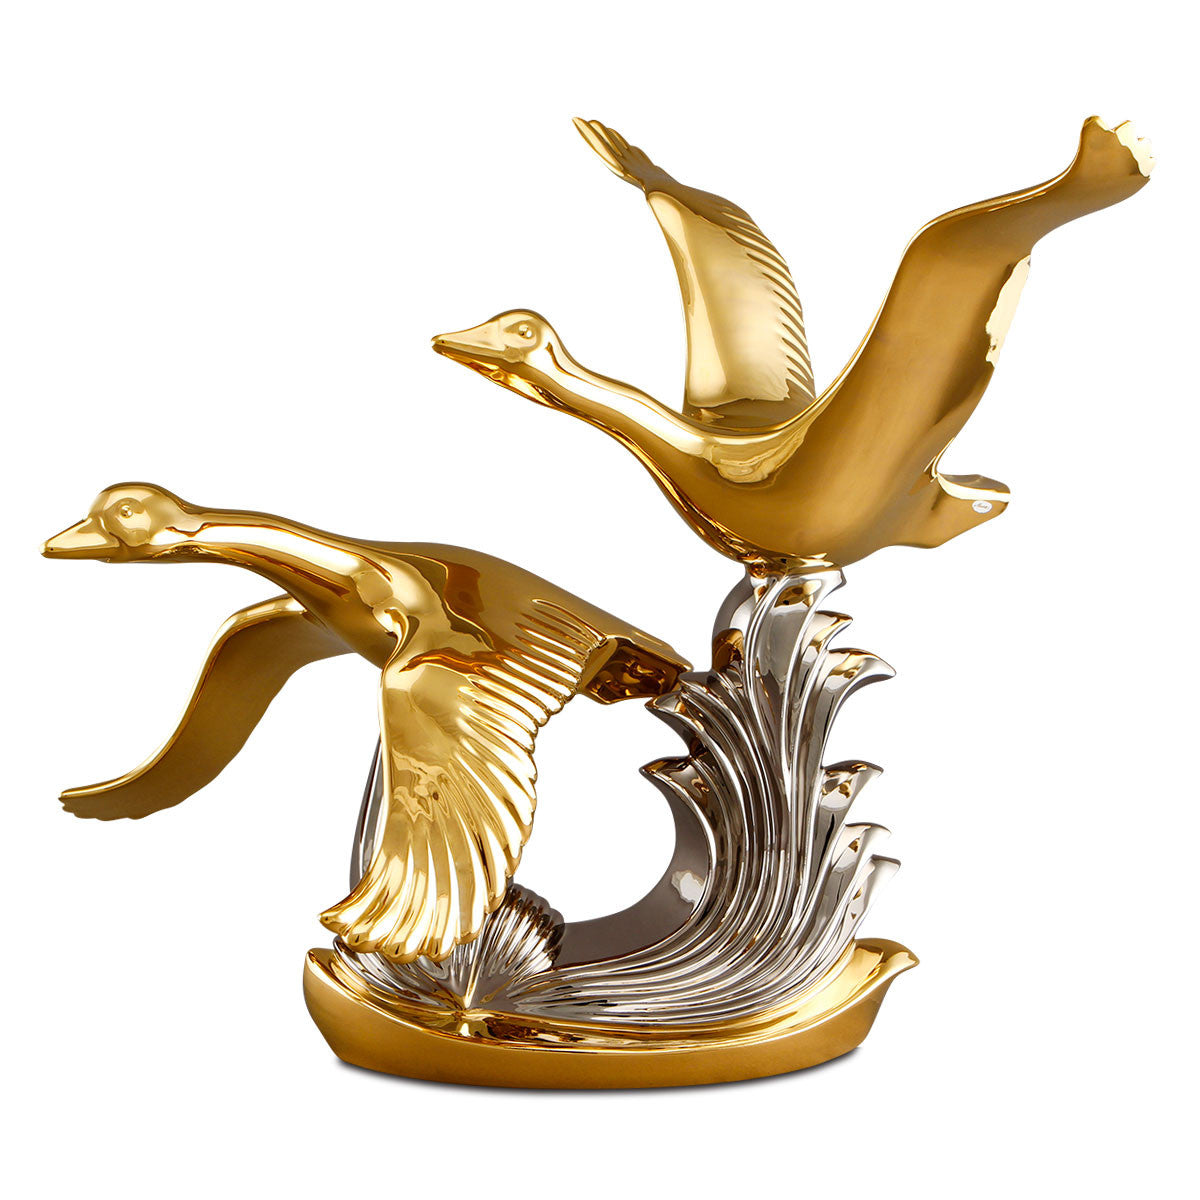 Ceramic flying geese statue in gold and platinum